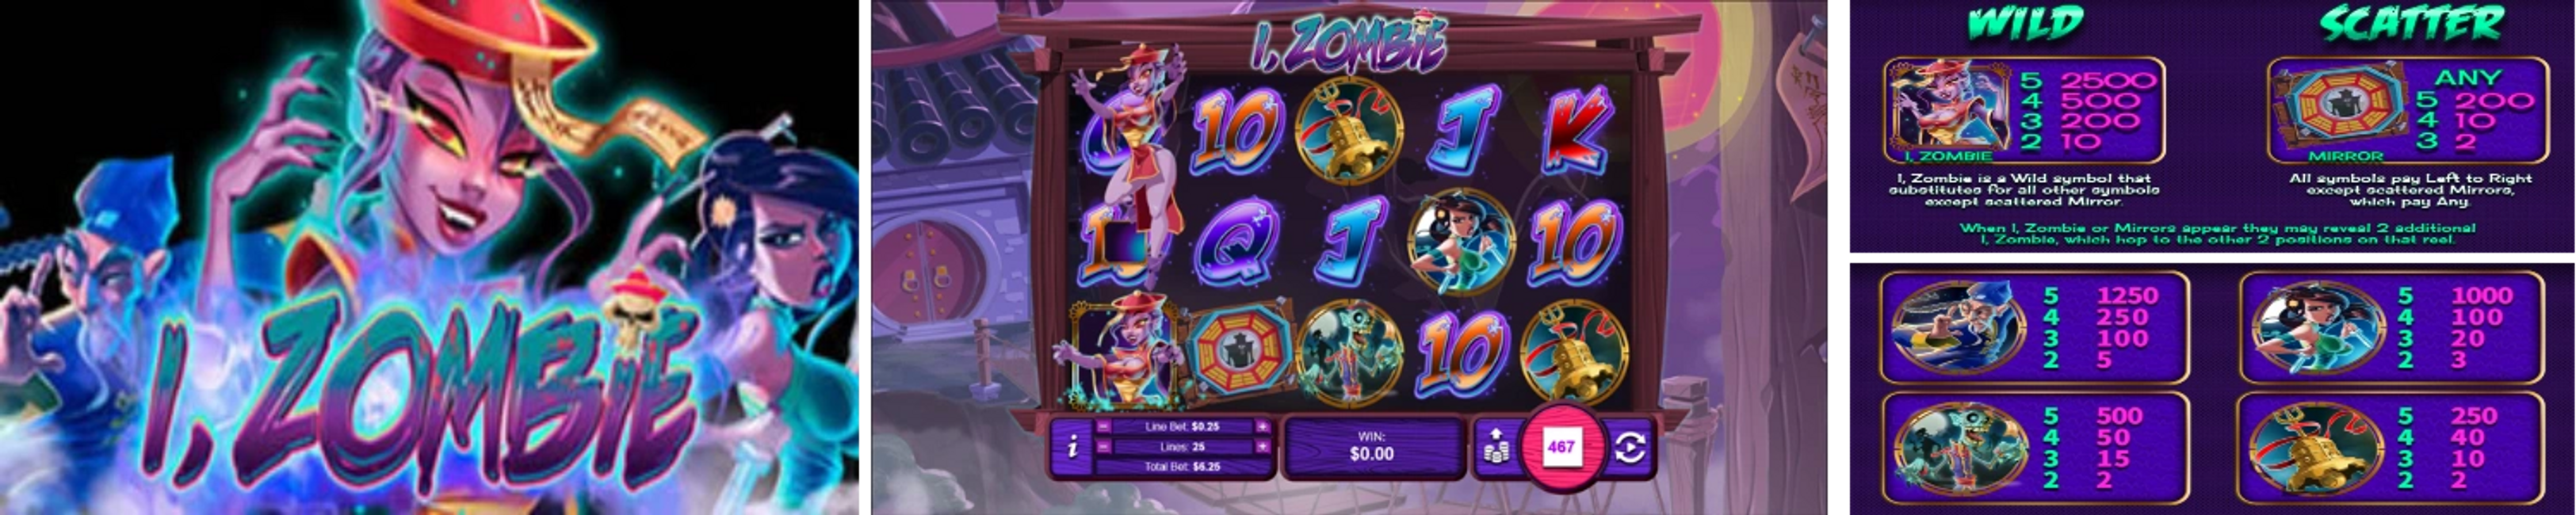 I, Zombie Online Video Slot Review